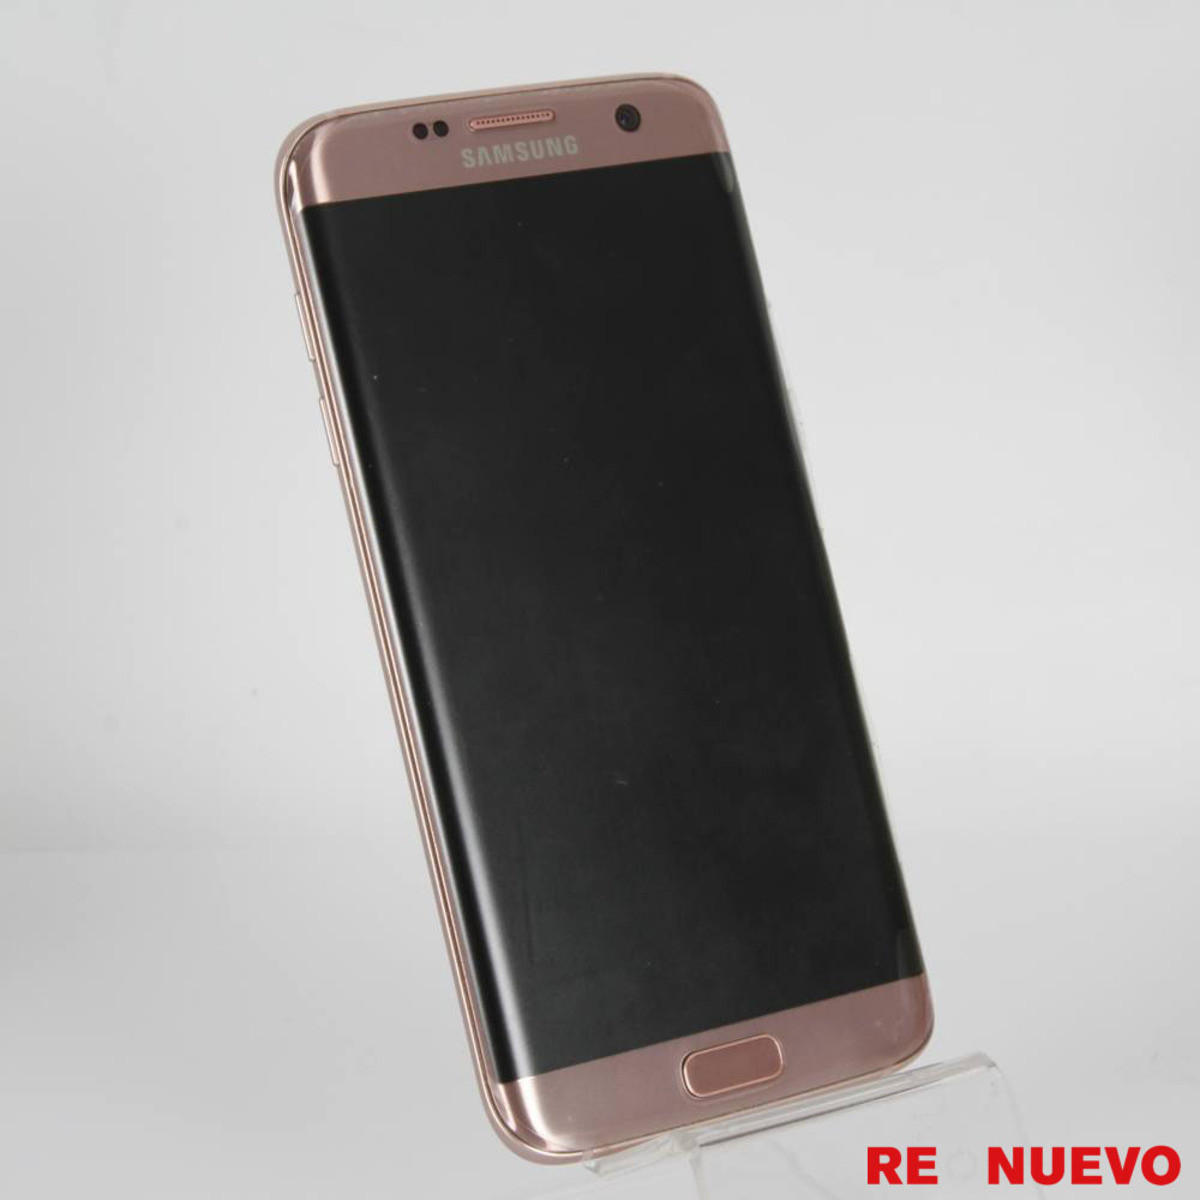 Comprar Galaxy S7 Edge Único Prar Samsung Galaxy S7 Edge De 32gb Pink Gold De Of Comprar Galaxy S7 Edge Perfecto Samsung Galaxy S7 Edge Celulares Costa Rica